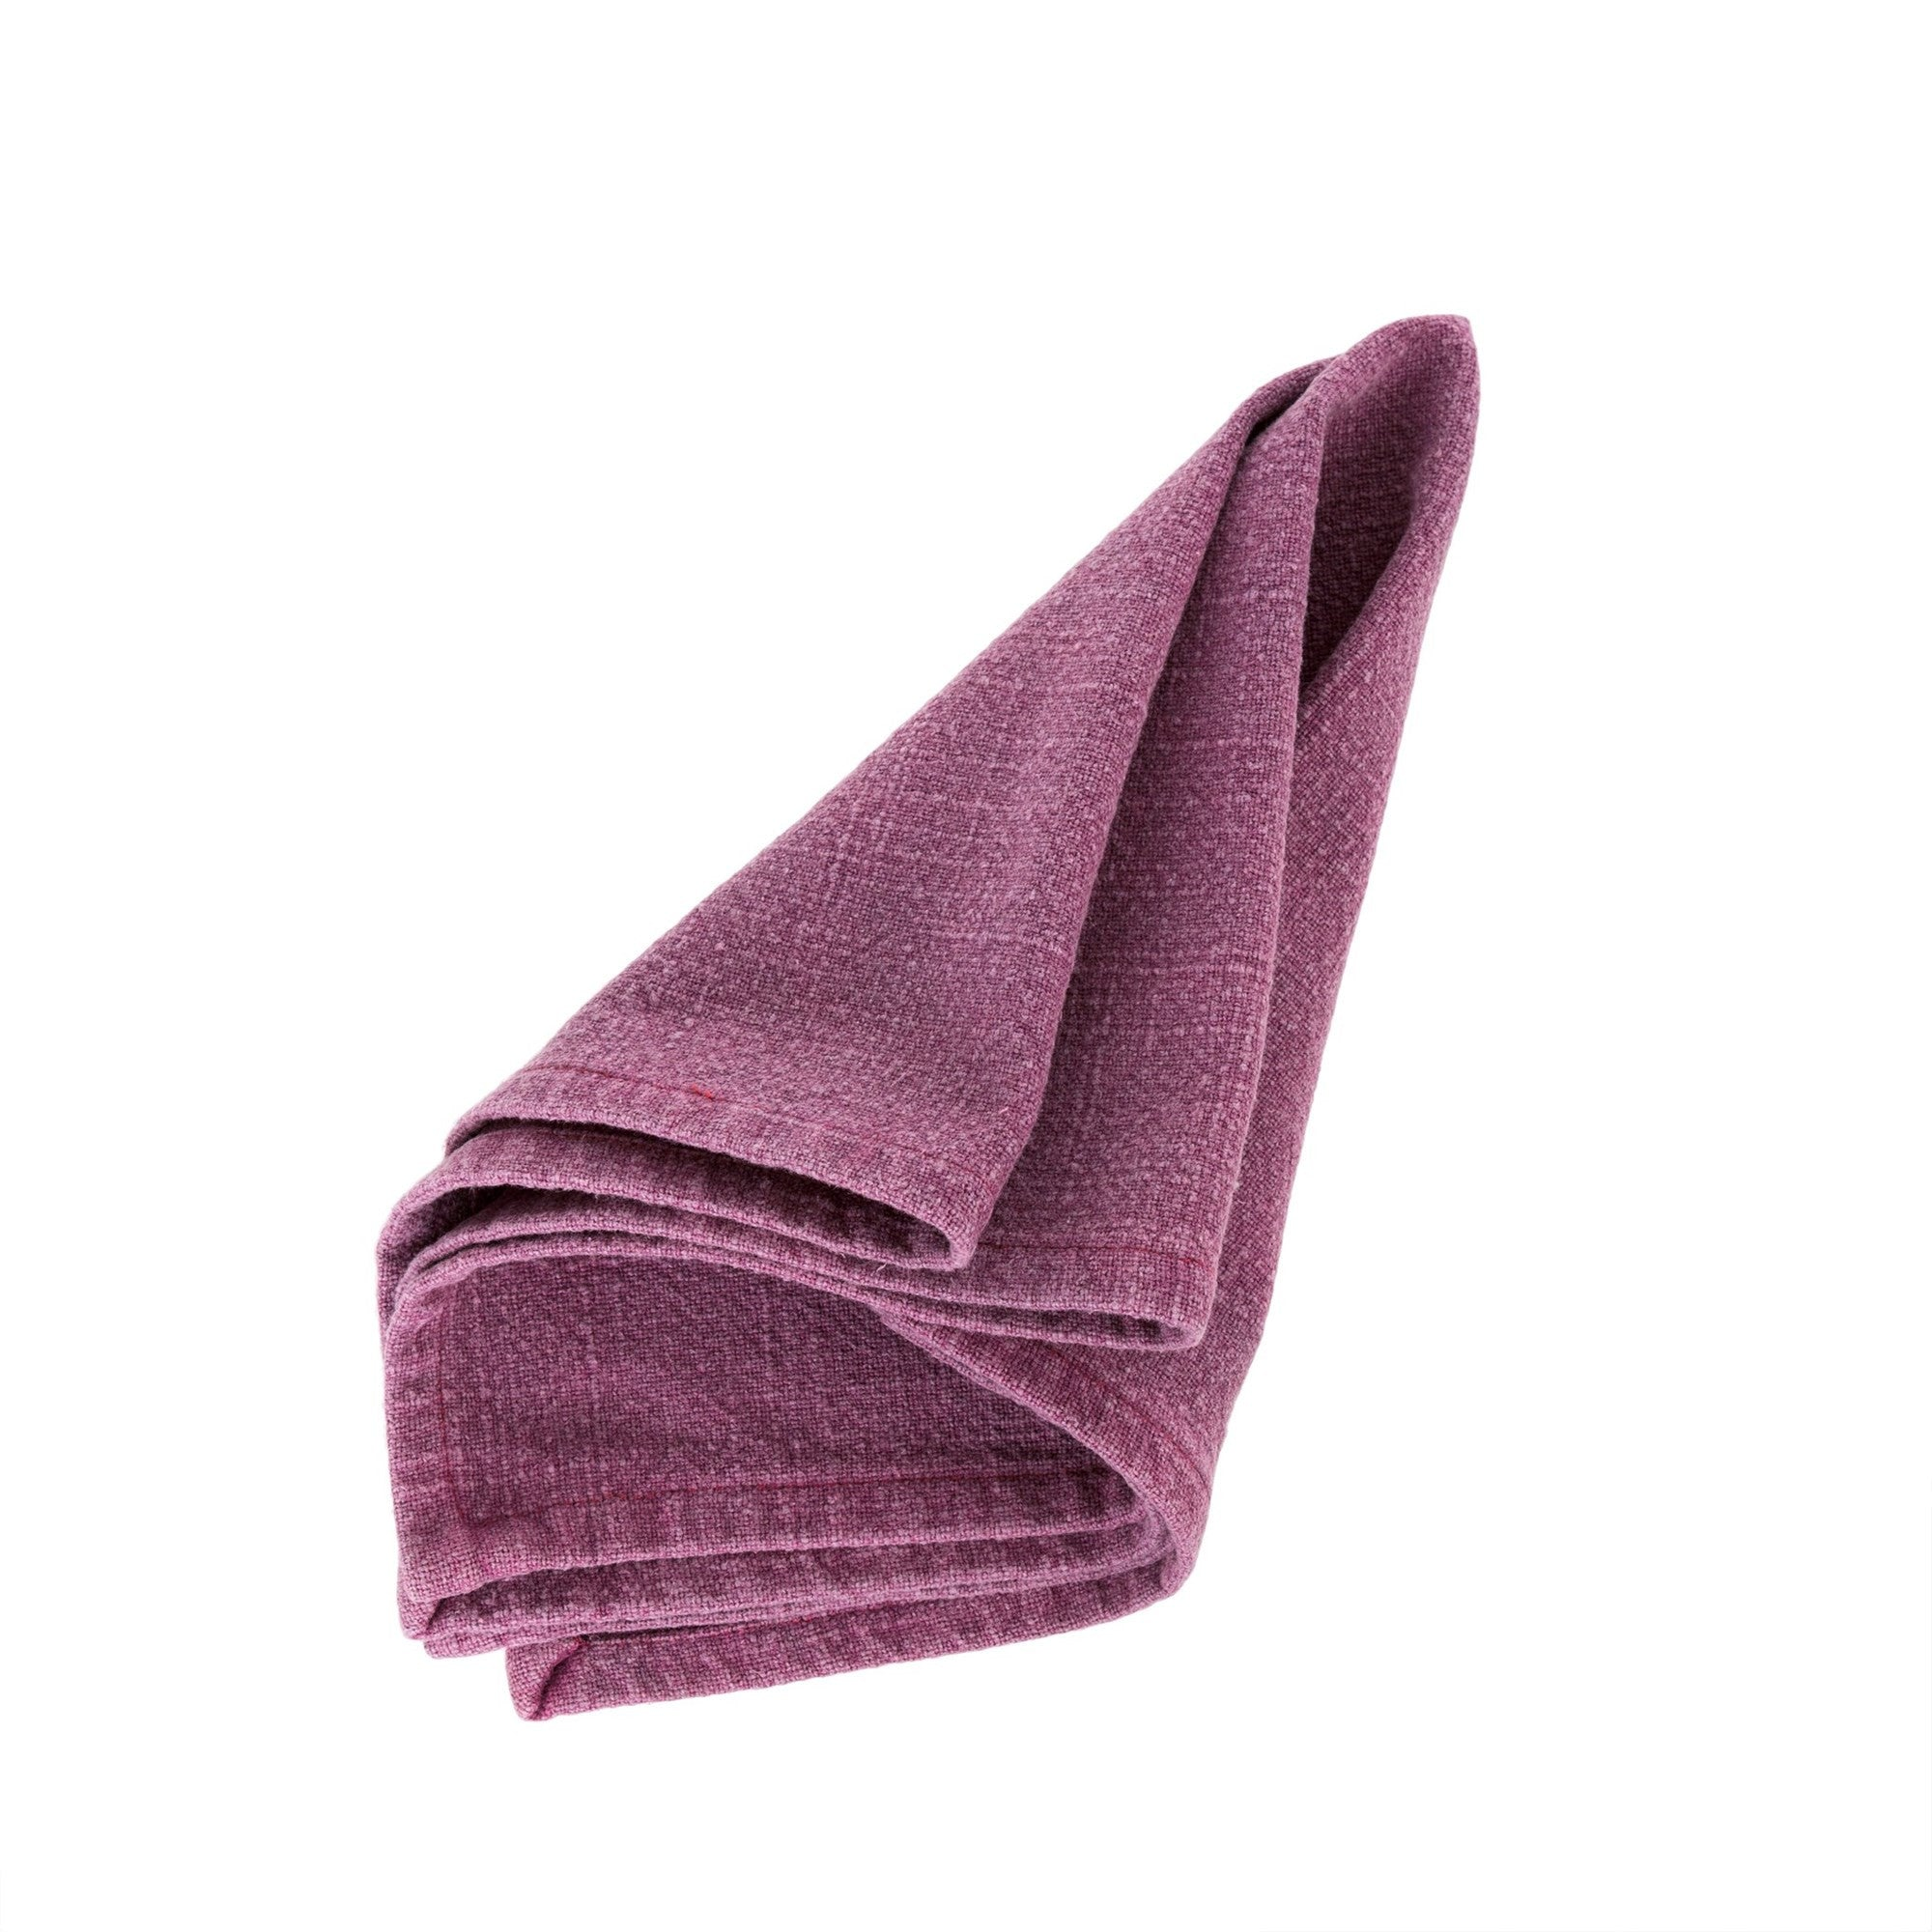 Stonewashed Napkin - Maroon -  Soft Furnishings - Indaba Trading - Putti Fine Furnishings Toronto Canada